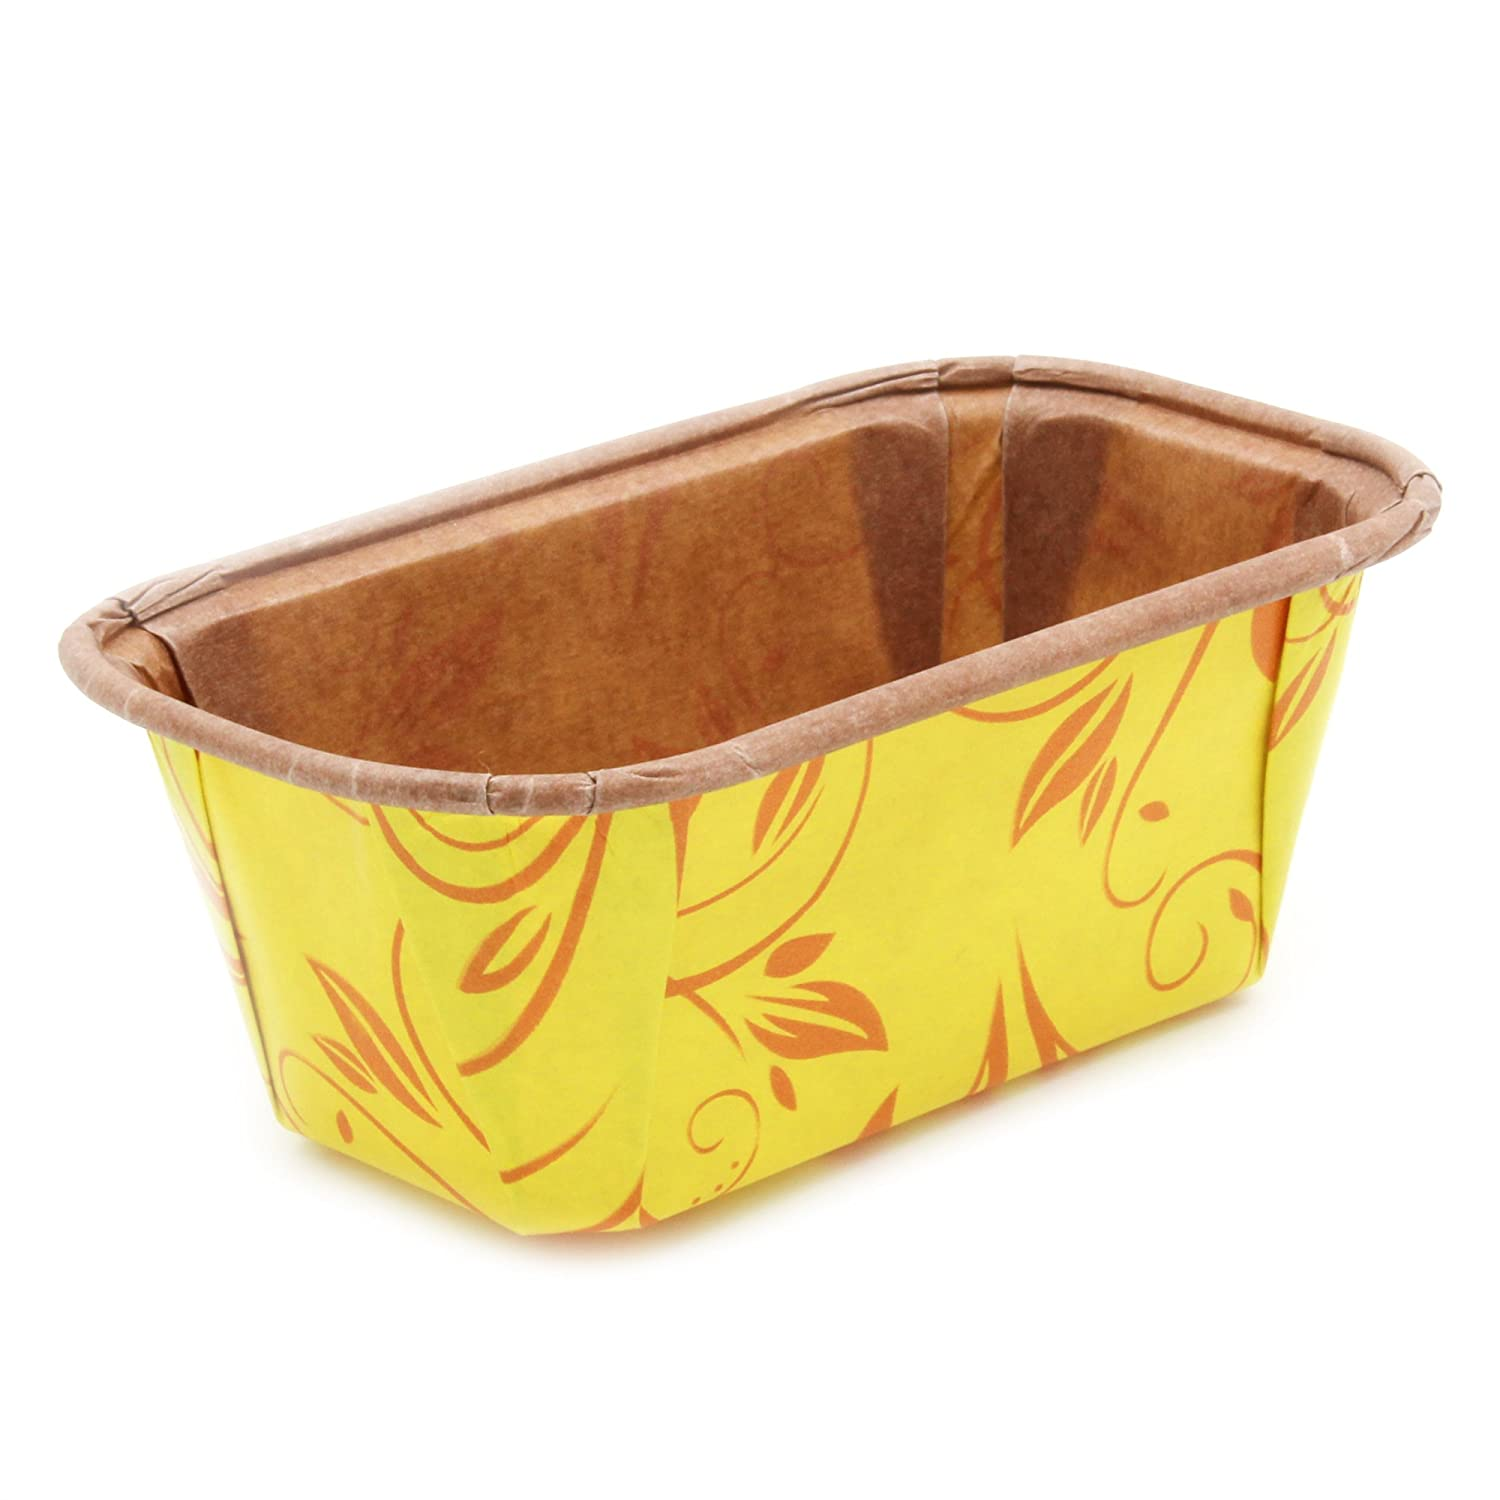 Premium Personal Mini Size Paper Baking Loaf Pan Perfect for Chocolate Cake Banana Bread Brown /& Gold Set of 10 by EcoBake